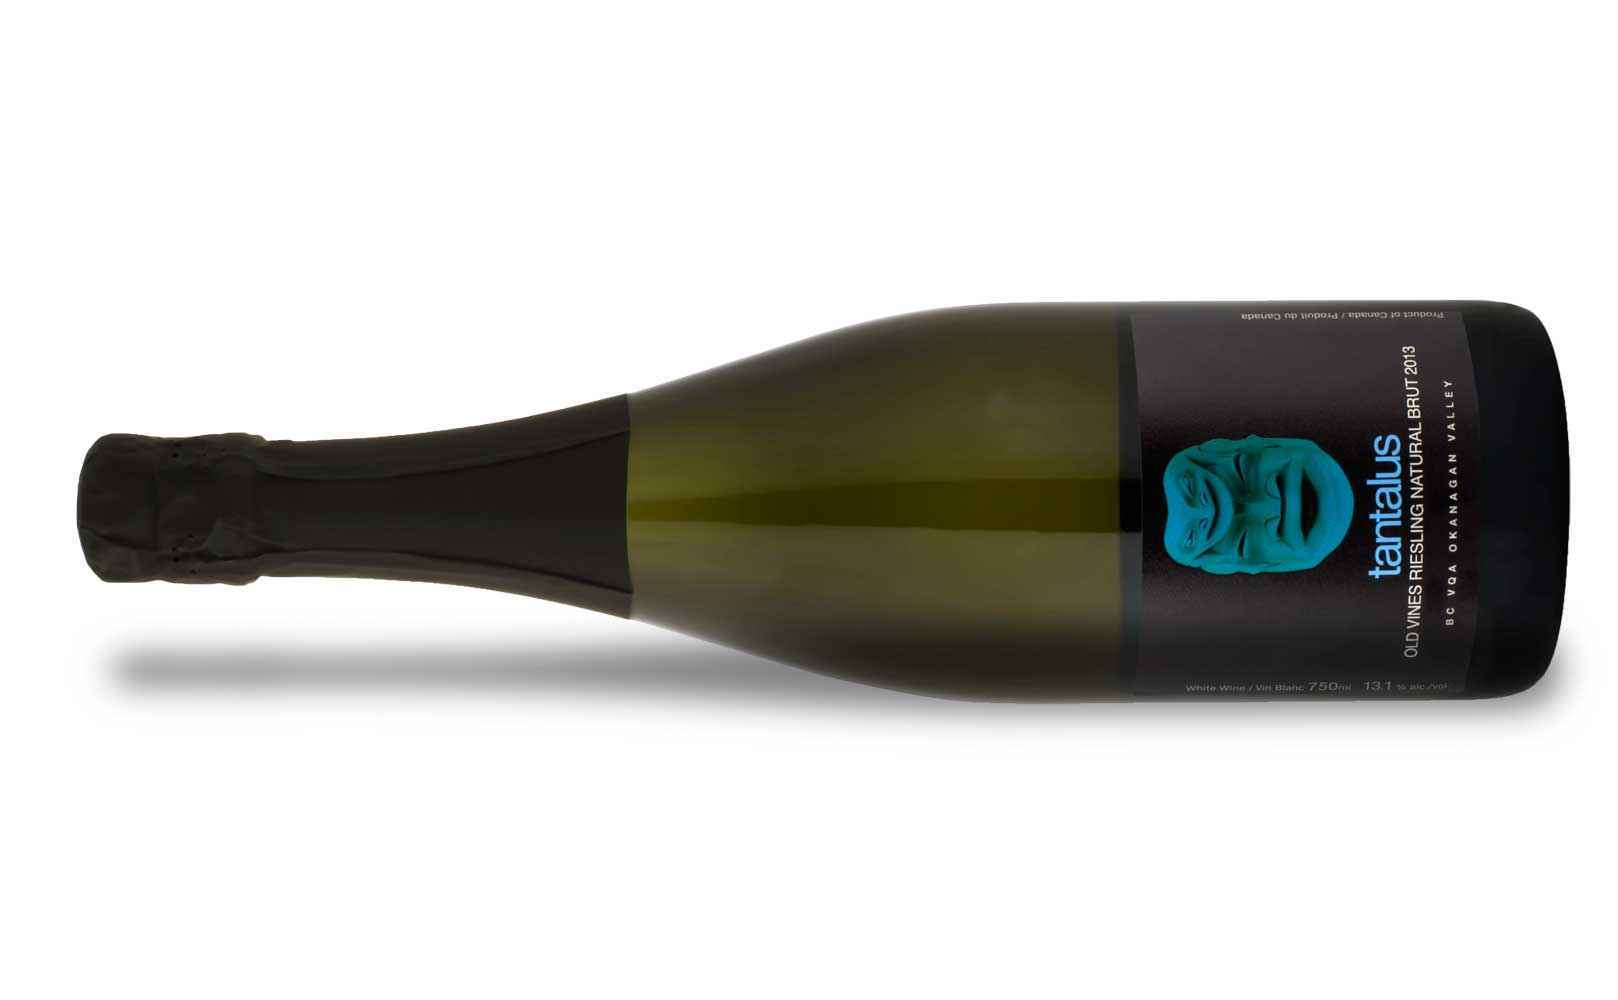 Go to 2013 Tantalus Riesling Old Vines Natural Brut von Tantalus Vineyards aus Okanagan Valley/BC, Kanada